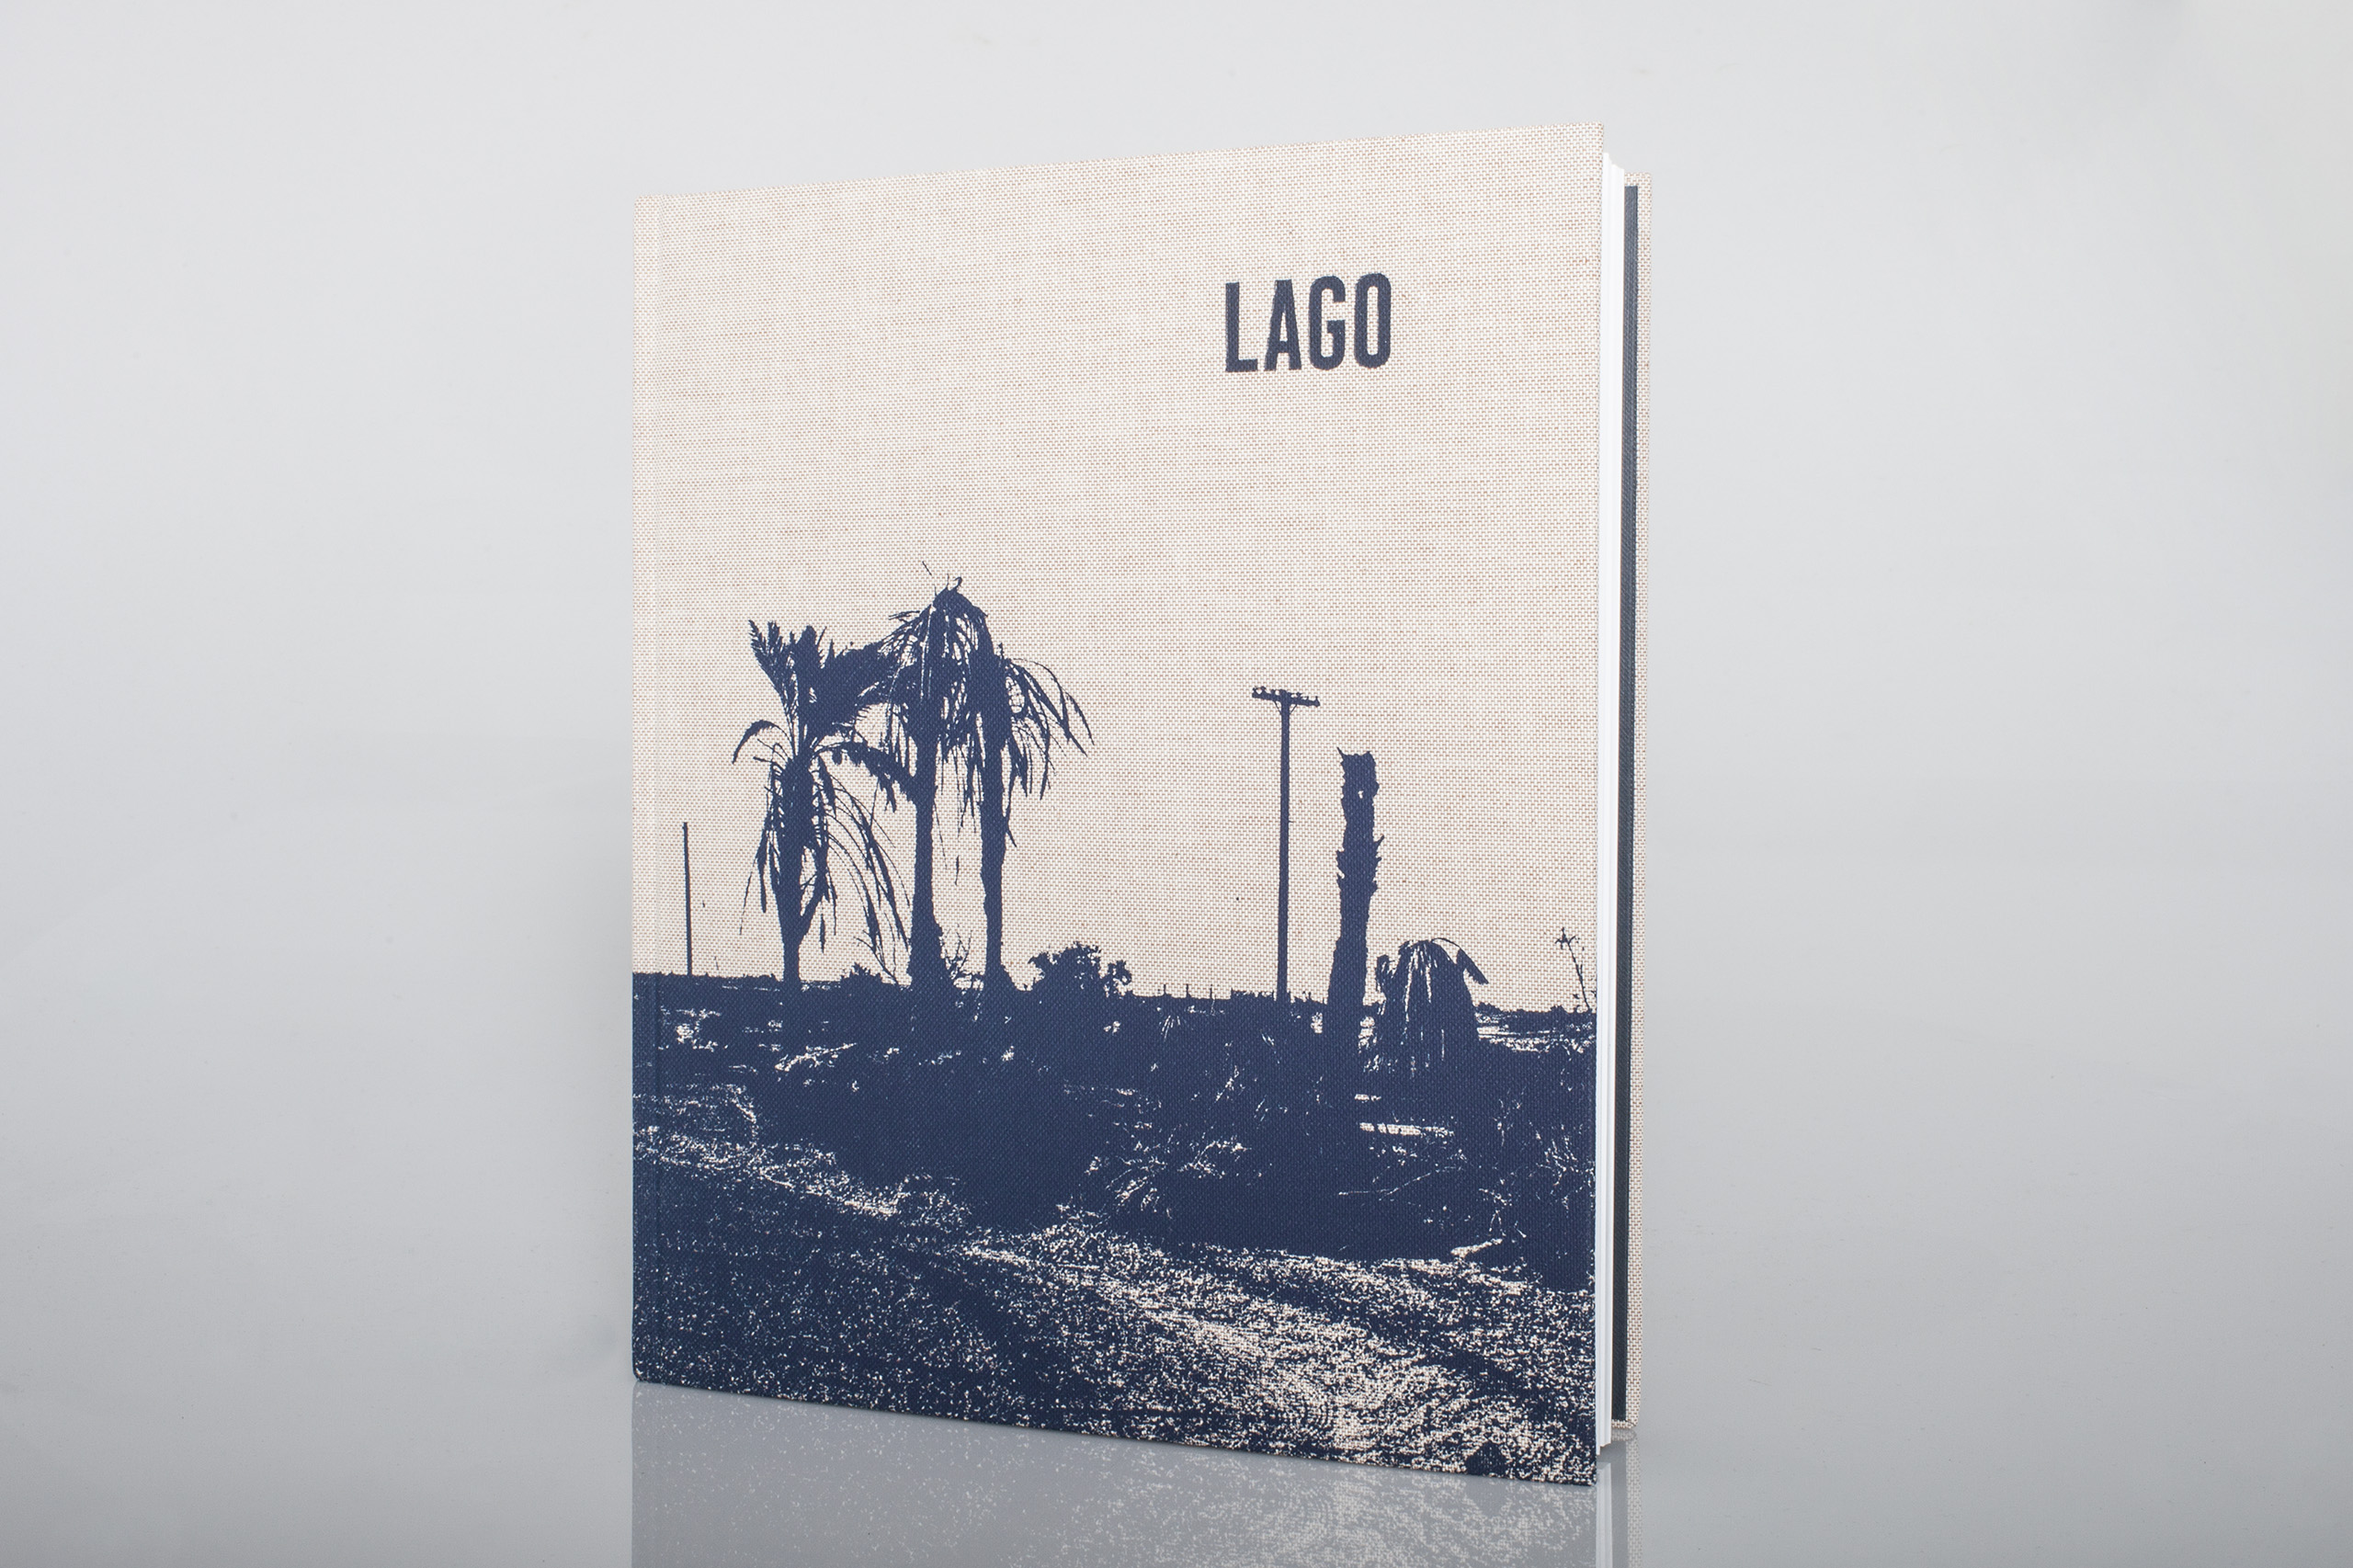 Lago  by Ron JudePublished by Mack